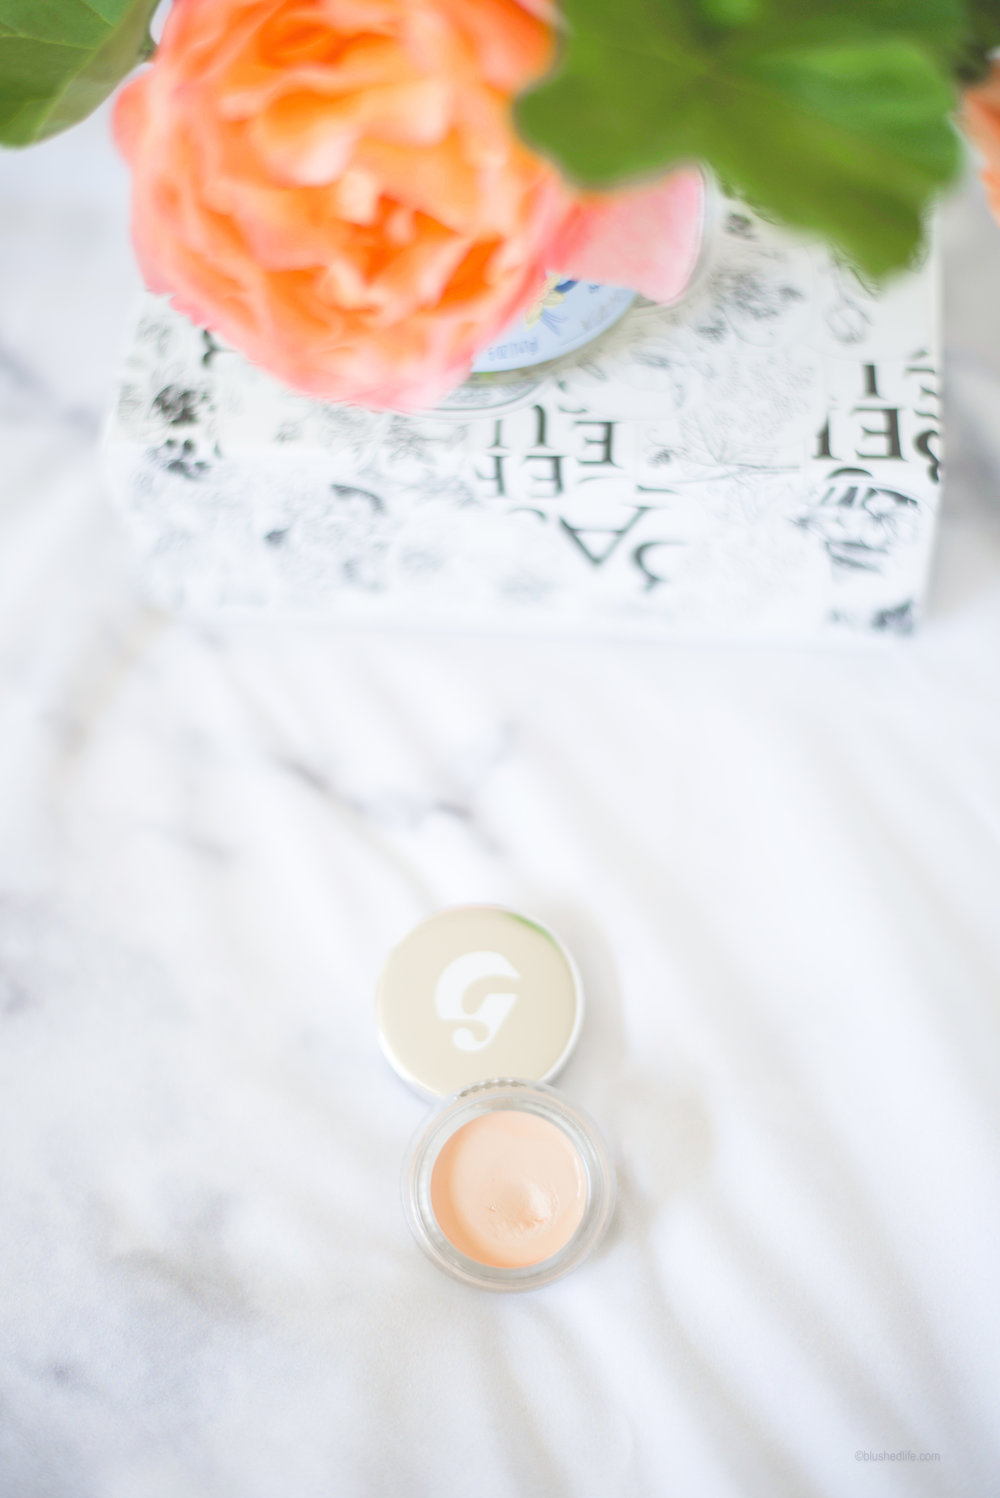 Glossier Stretch Concealer -